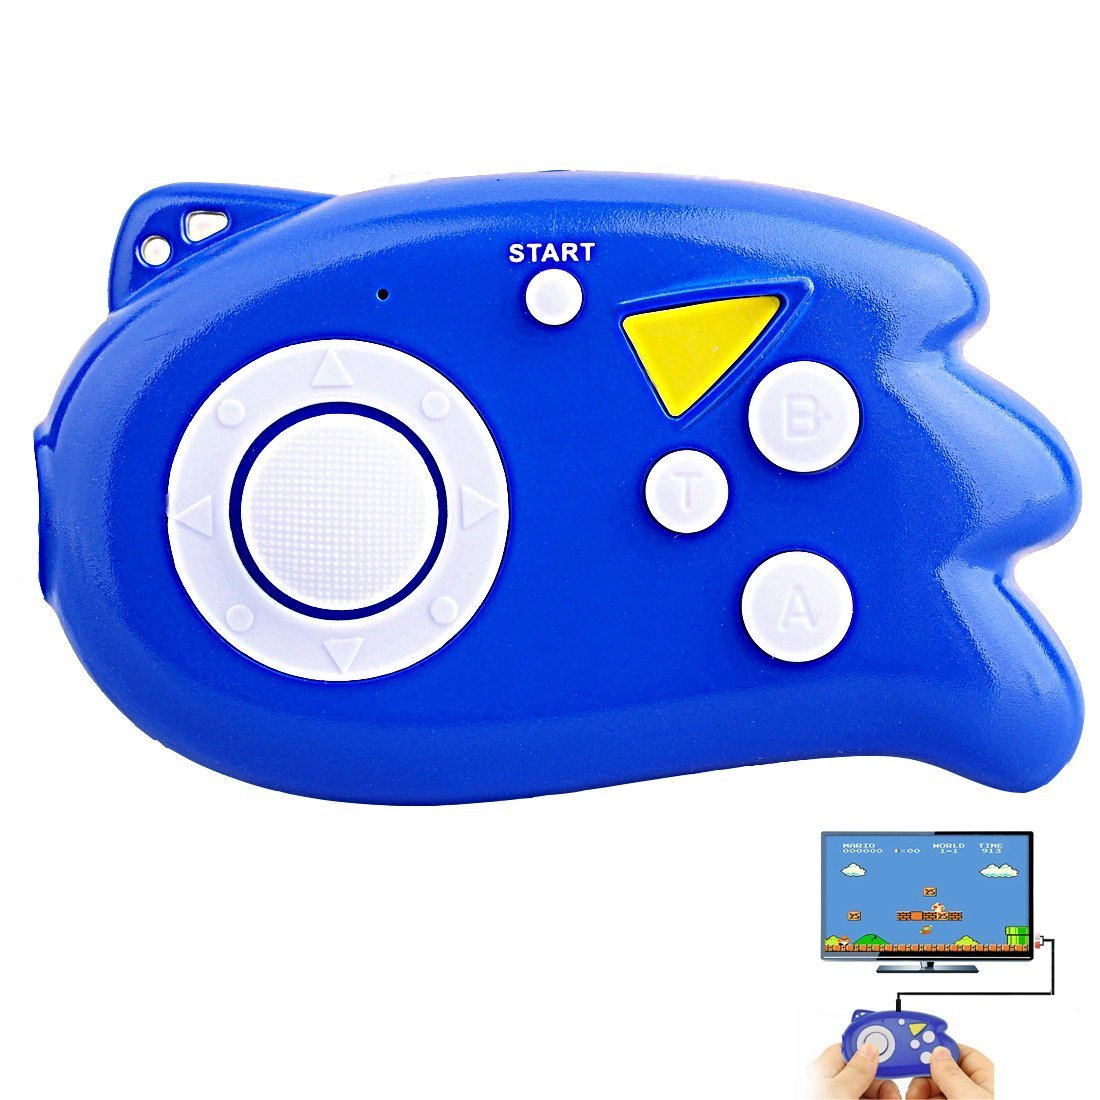 E-MODS GAMING Hisonders TV Mini Game Console, Plug & Play Player with 89 TV Games (Blue)